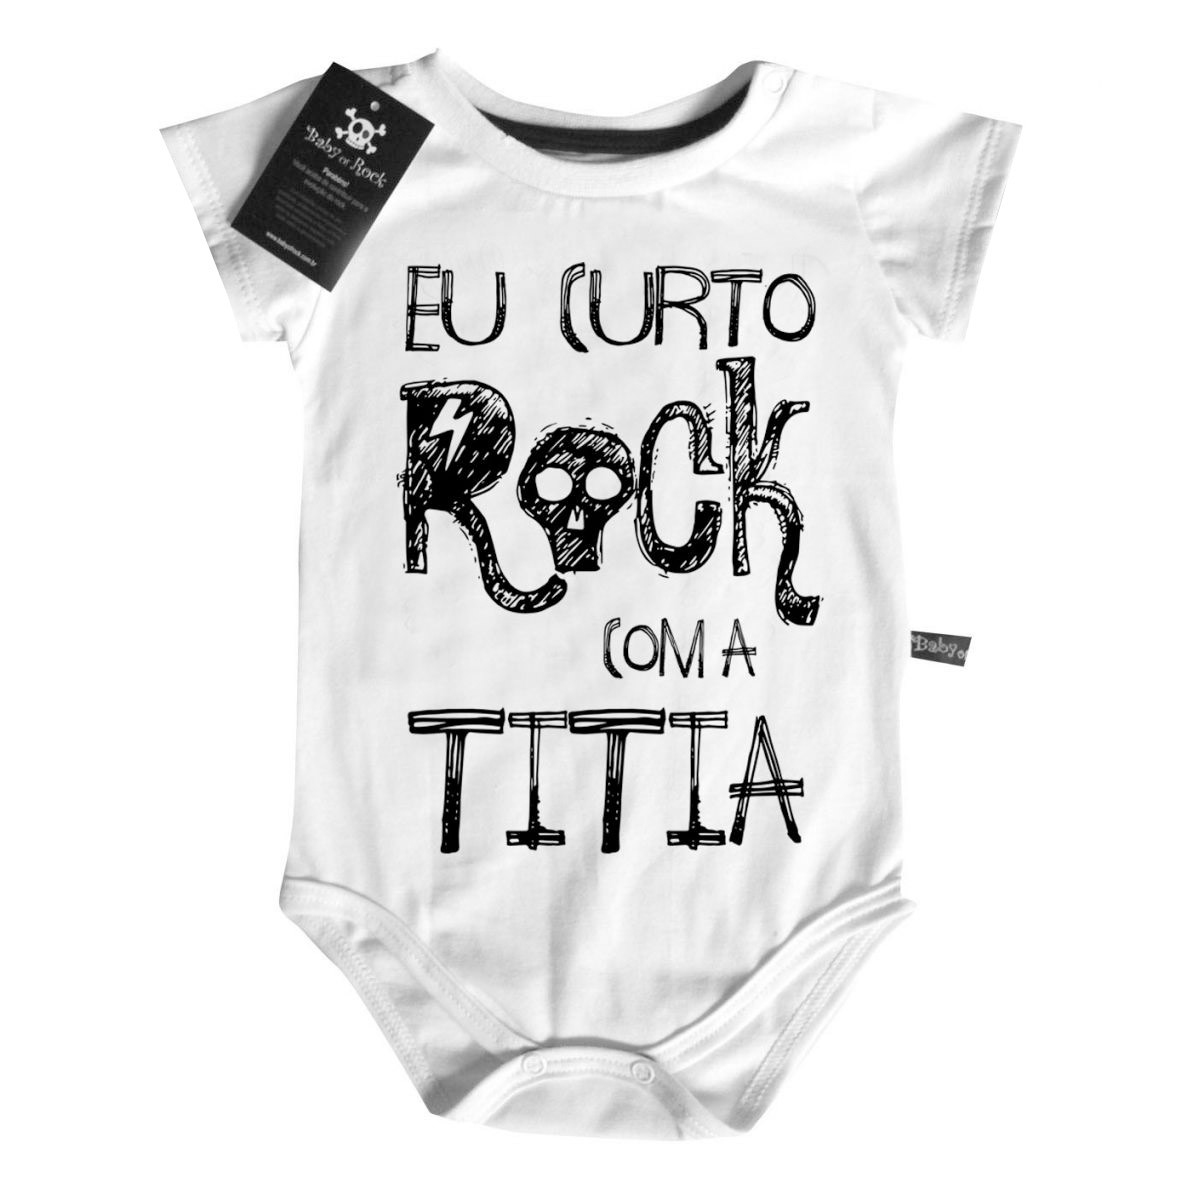 Body Baby Rock - Eu curto Rock com a Titia  - White  - Baby Monster S/A